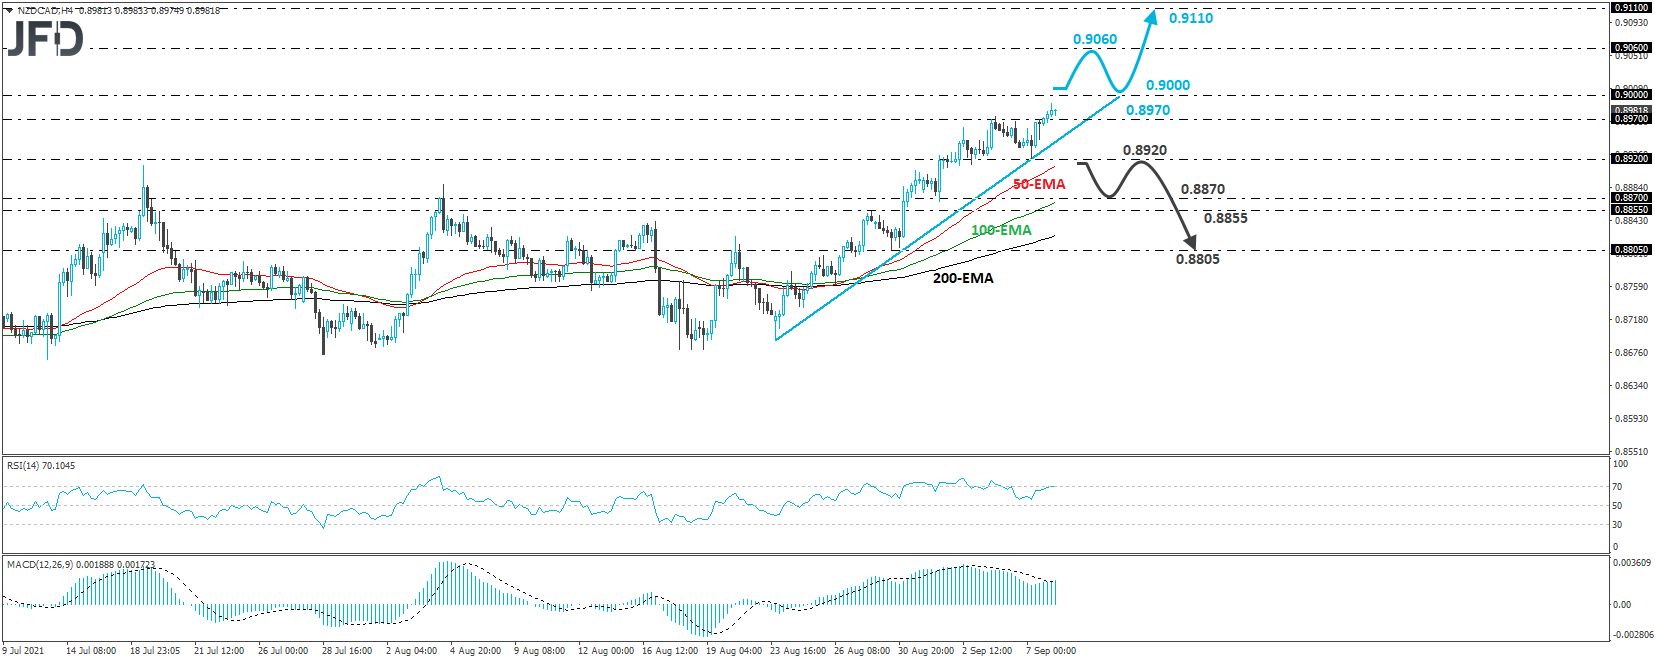 NZD/CAD 4-hour chart technical analysis